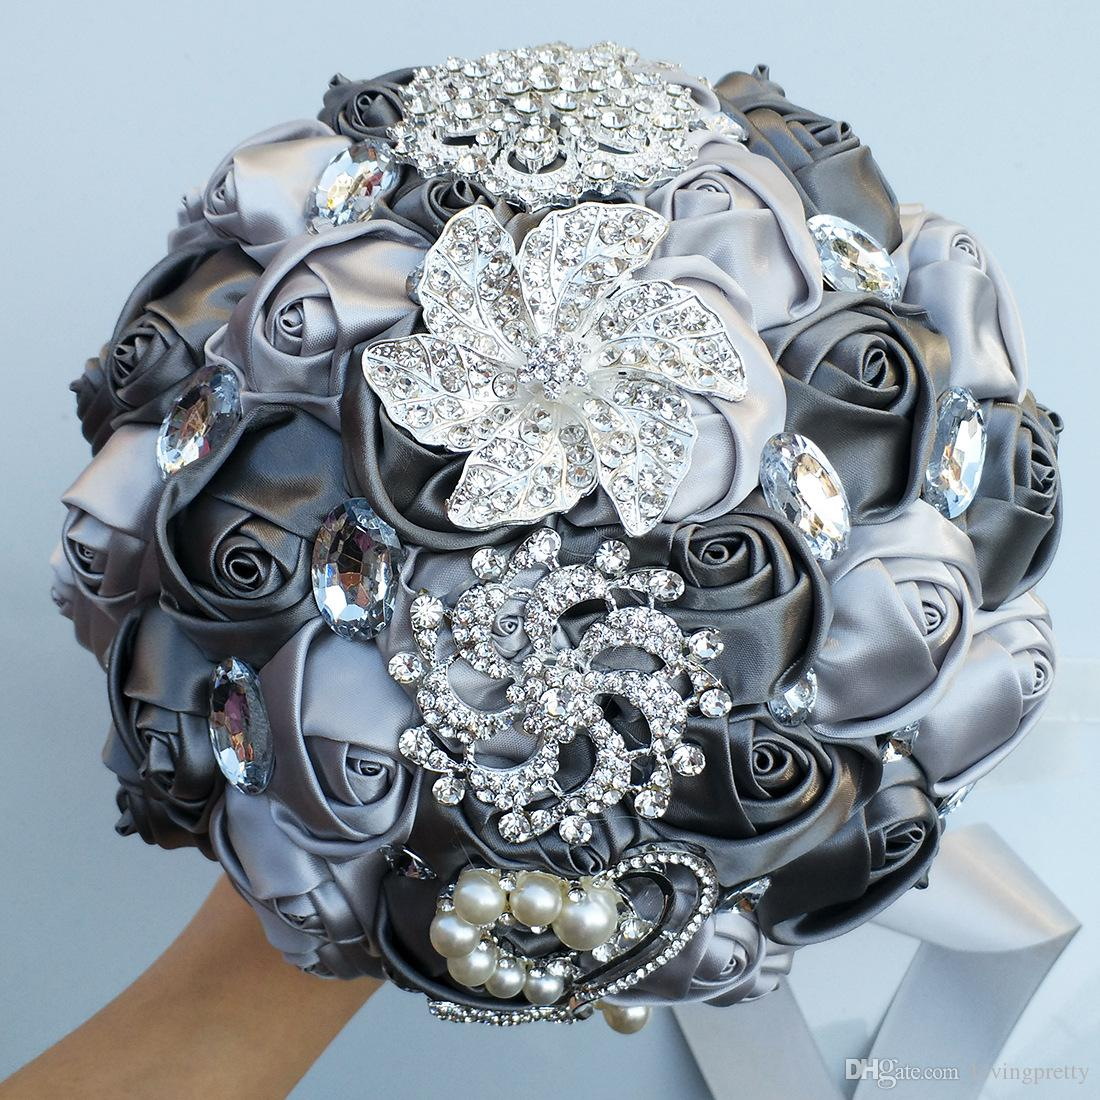 Jane Vini Beautiful Crystal Rhinestone Artificial Wedding Bouquets For Bride Grey Holding Flowers Brooch Bouquet Handmade Roses With Pearls